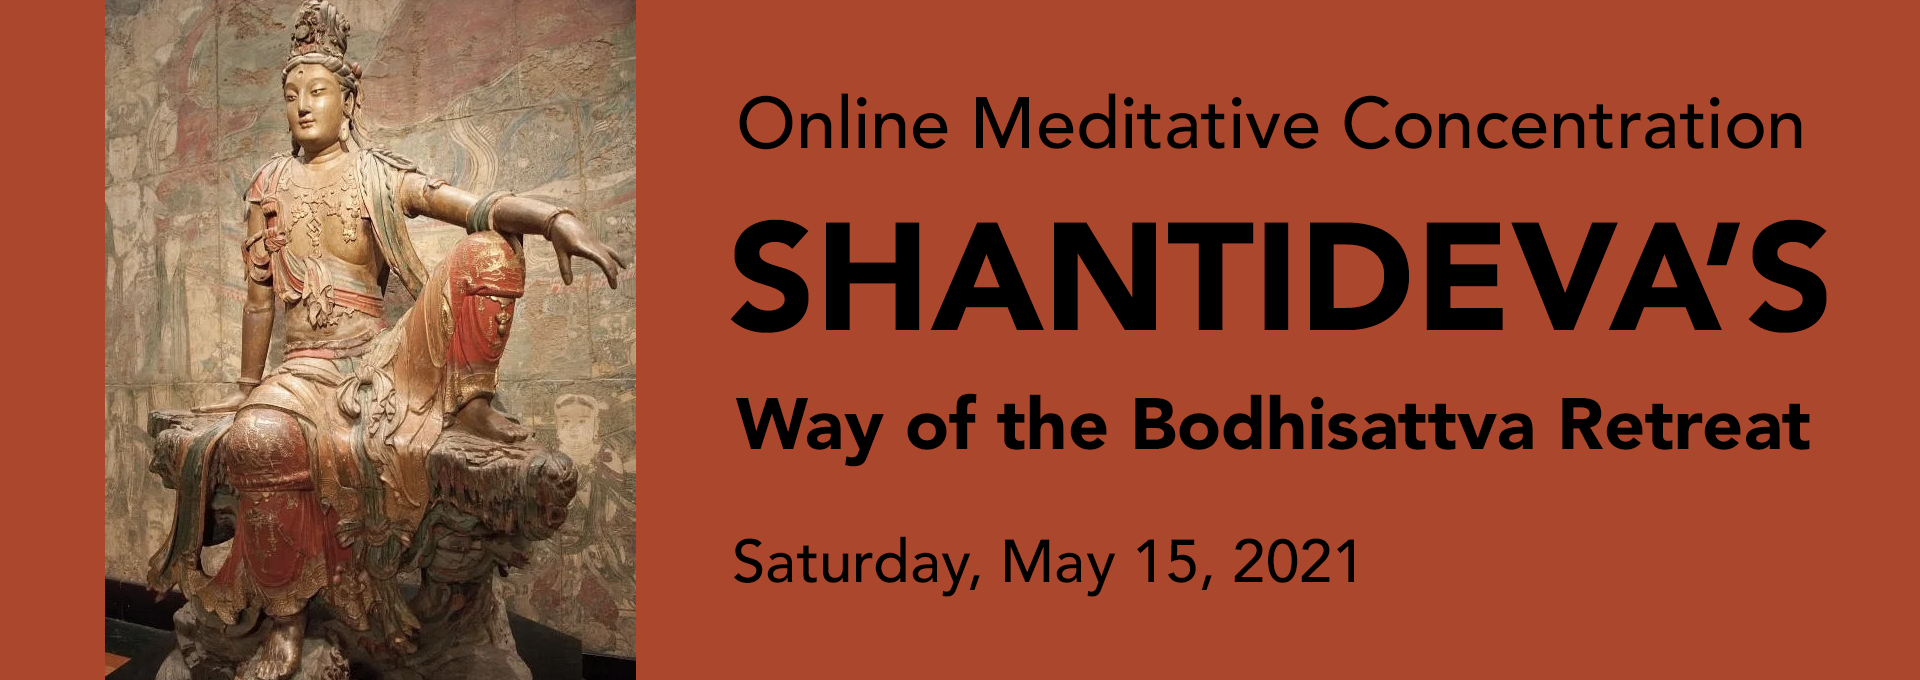 Shantideva's Way of the Bodhisattva Retreat